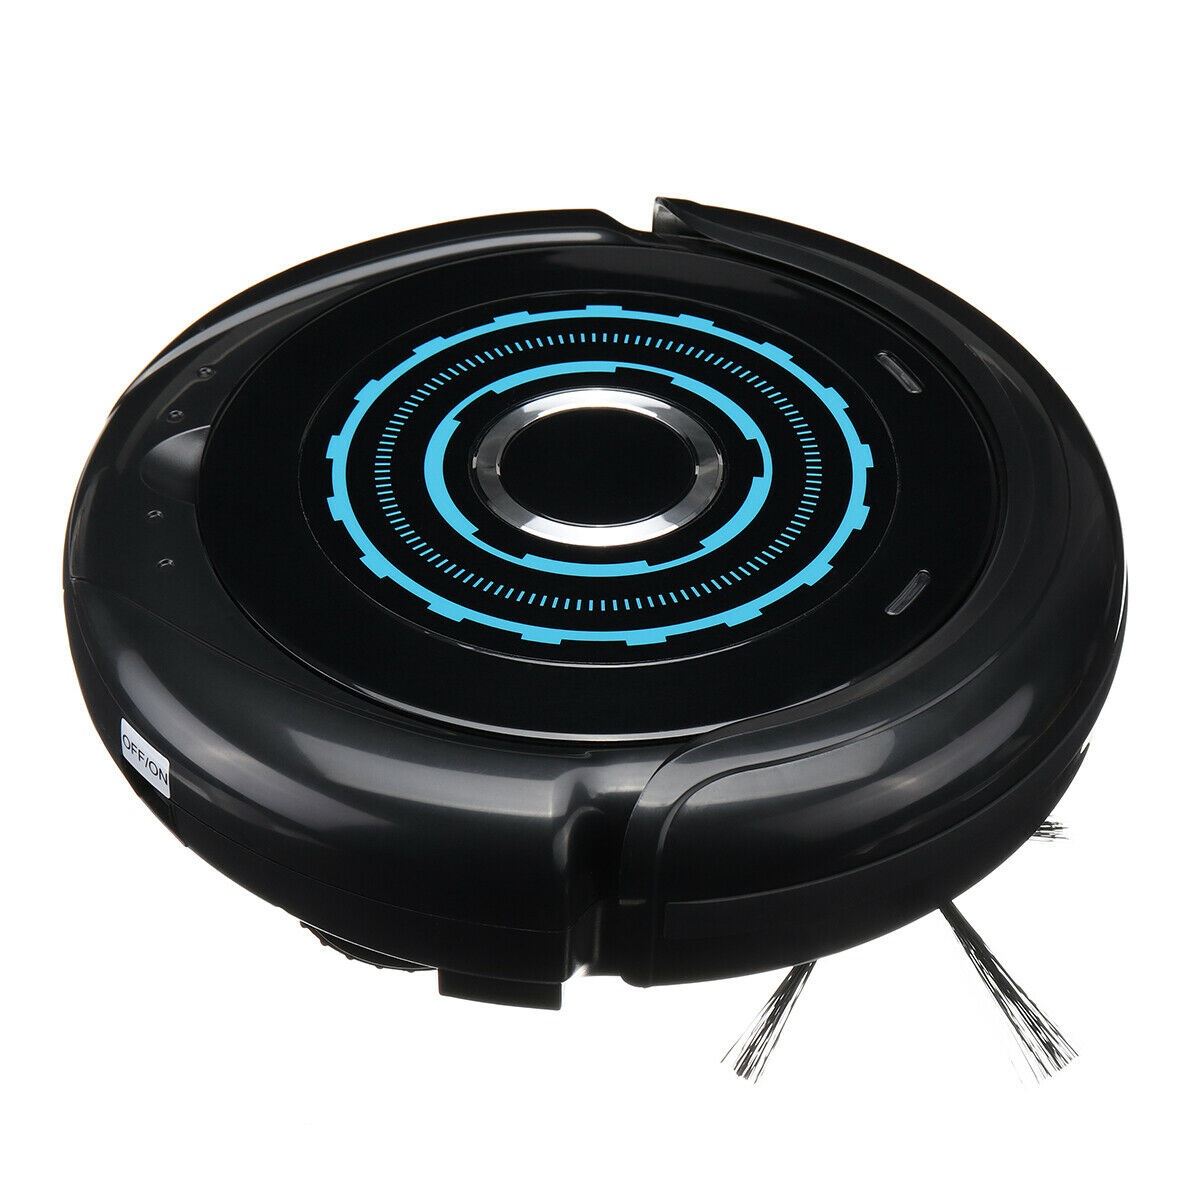 Holmark Home Office Auto Cleaning Robot Floor Sweeper USB Smart Vacuum Cleaner